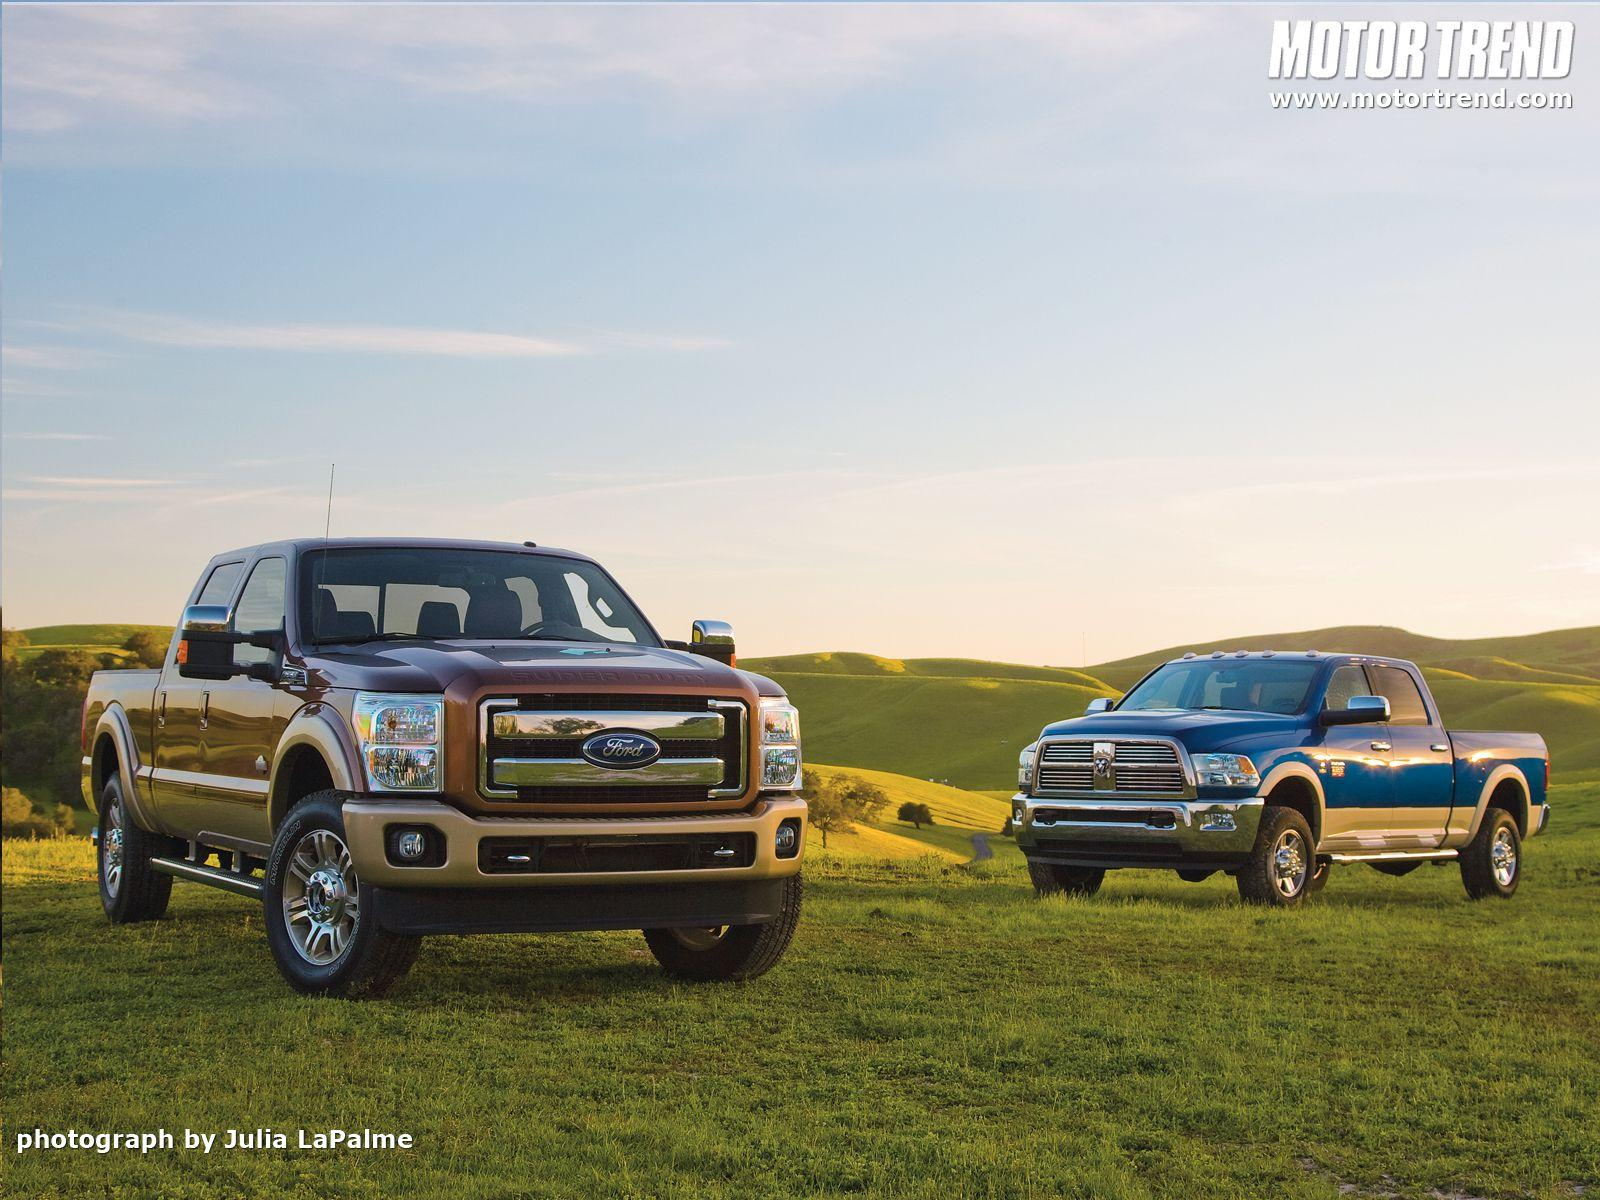 2011 Ford F-250 Super Duty and 2010 Ram 2500 Heavy Duty Wallpaper ...